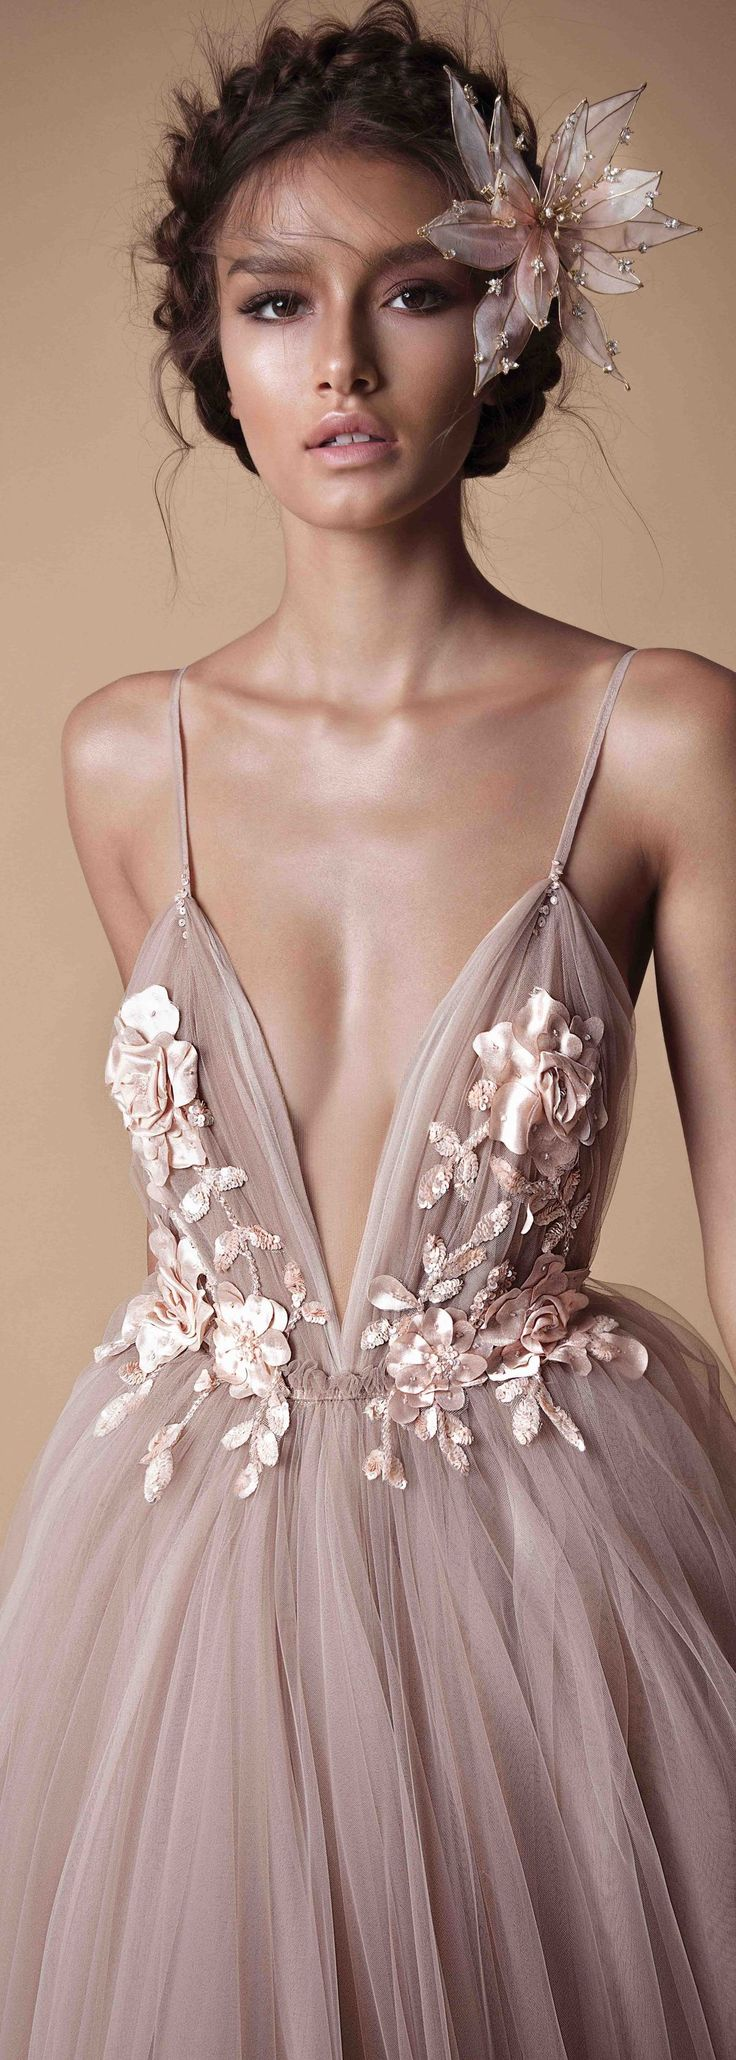 Best Alternative Wedding Dresses To Swoon Over Images On